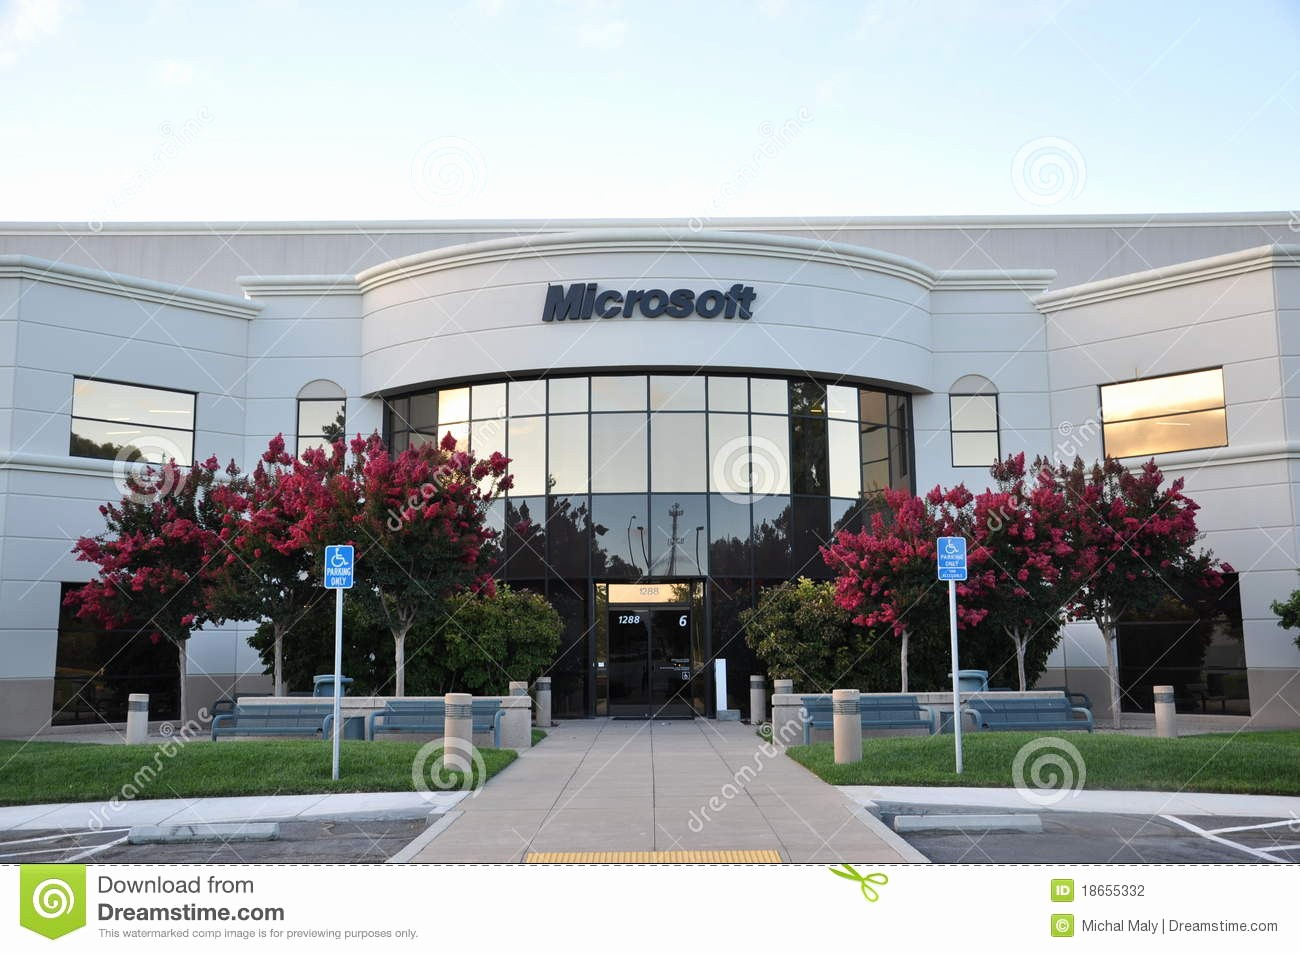 Microsoft Office 360 Sign In Awesome Microsoft Building Editorial Photography Image Of Campus